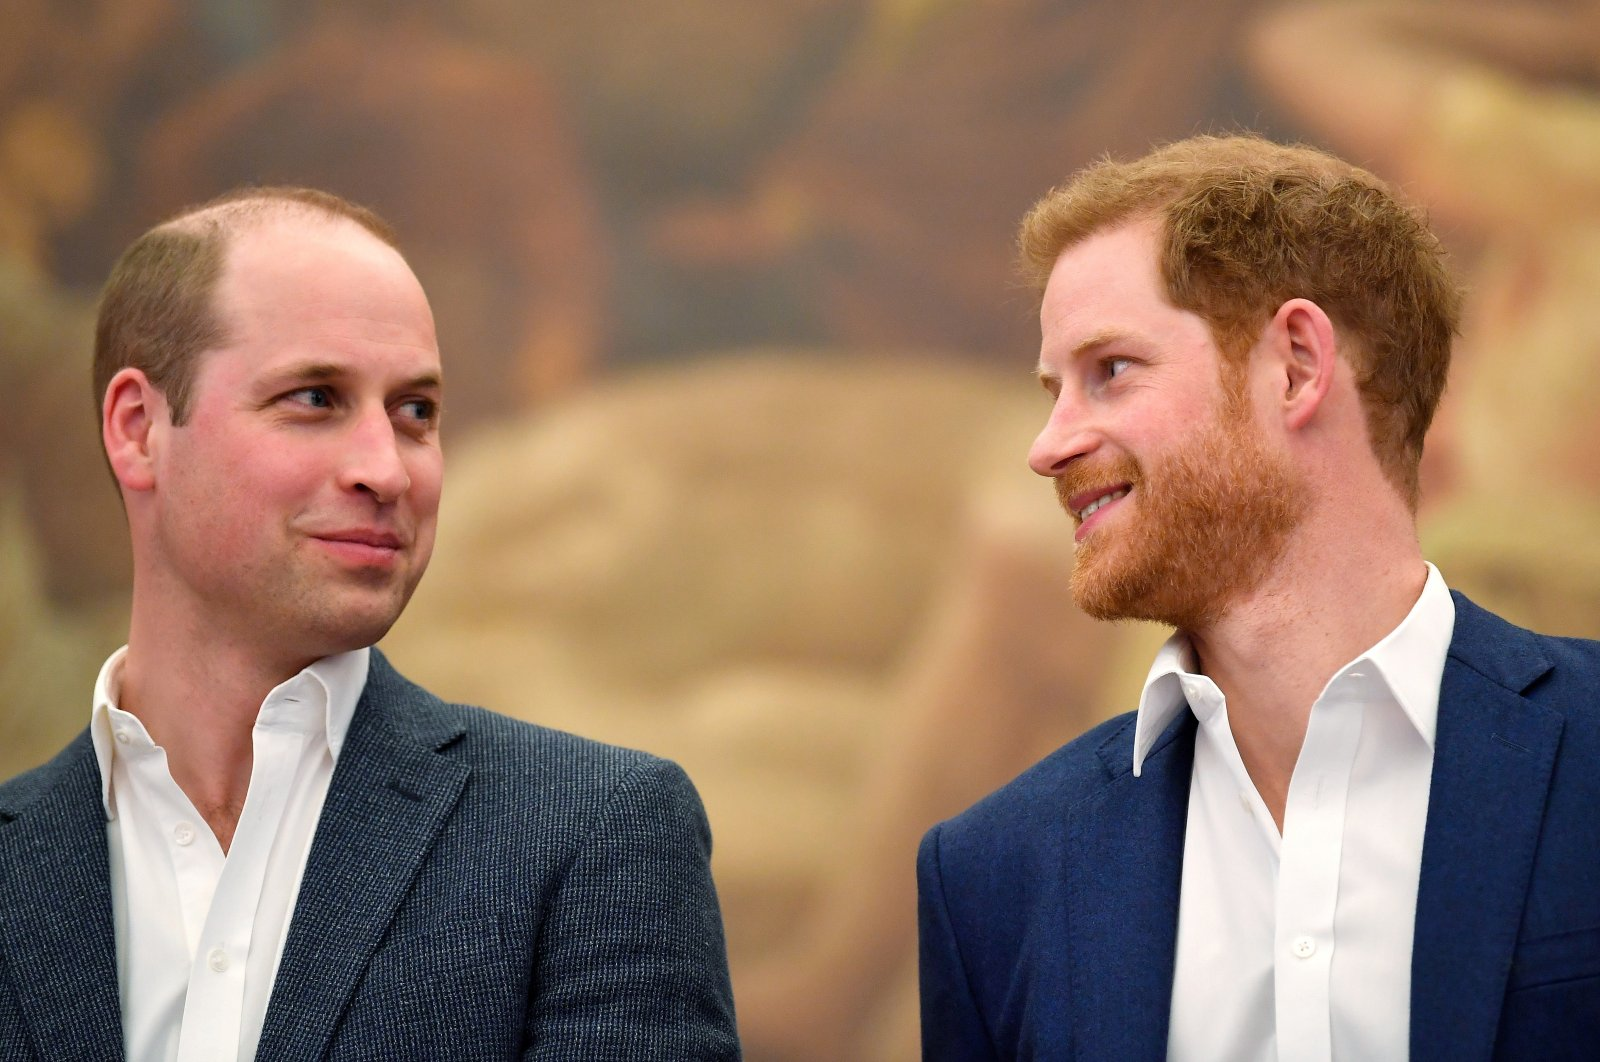 Britain's Prince William (L) and Prince Harry attend the opening of the Greenhouse Sports Centre in central London, U.K., April 26, 2018. (Reuters Photo)